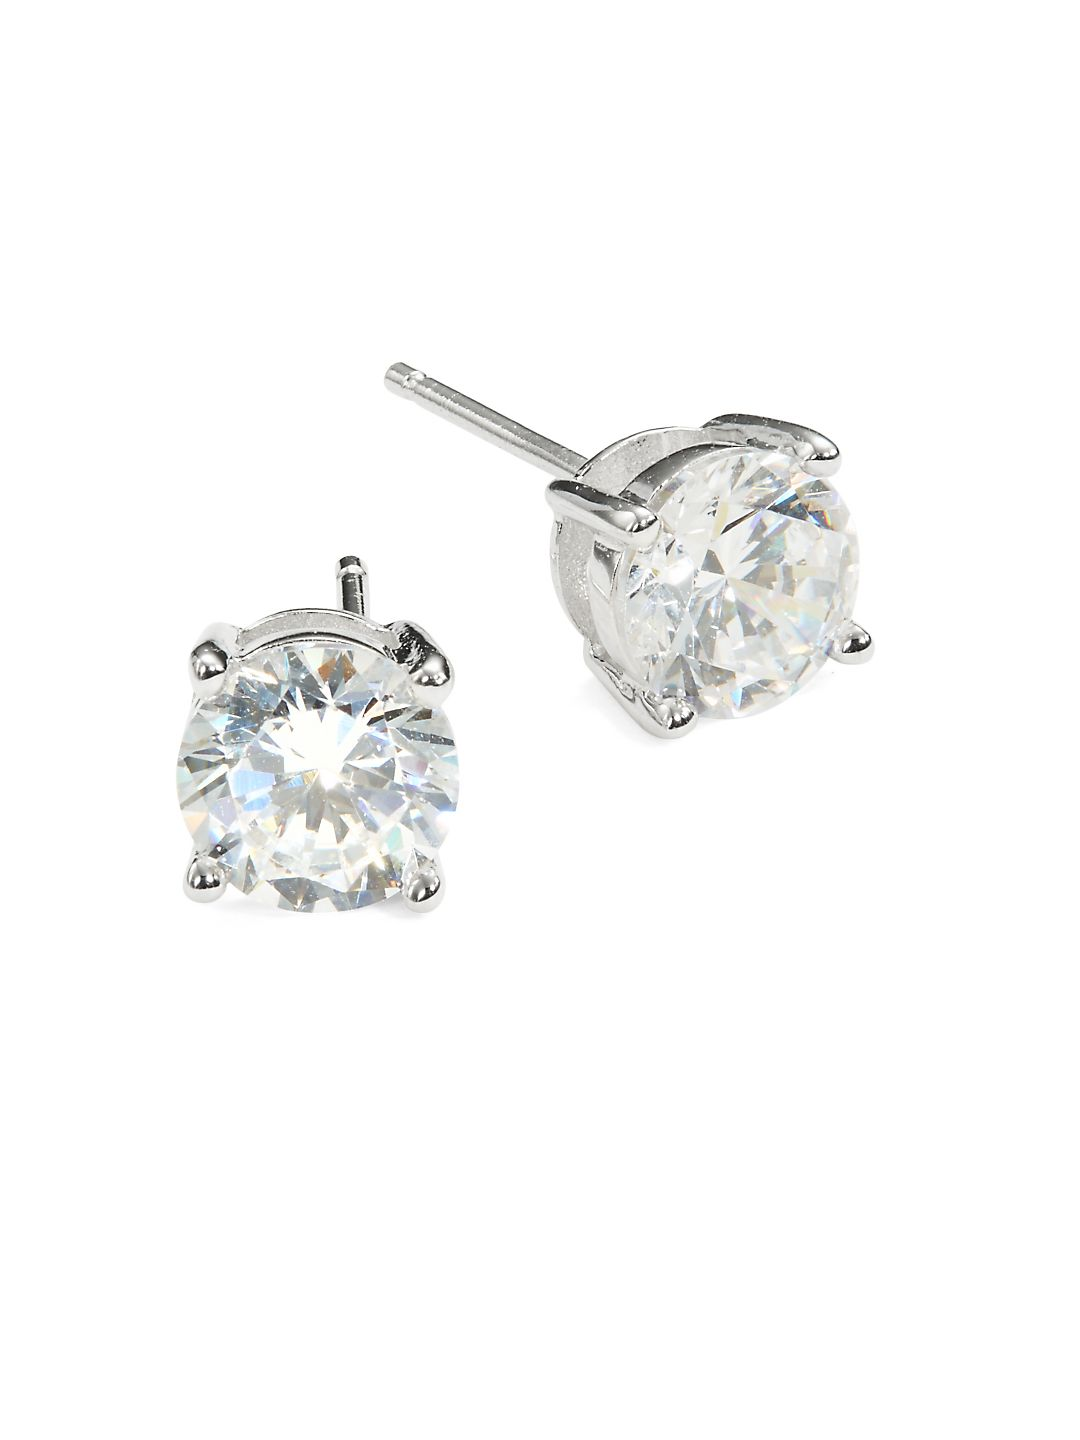 Solitaire Brilliant Sterling Silver Earrings